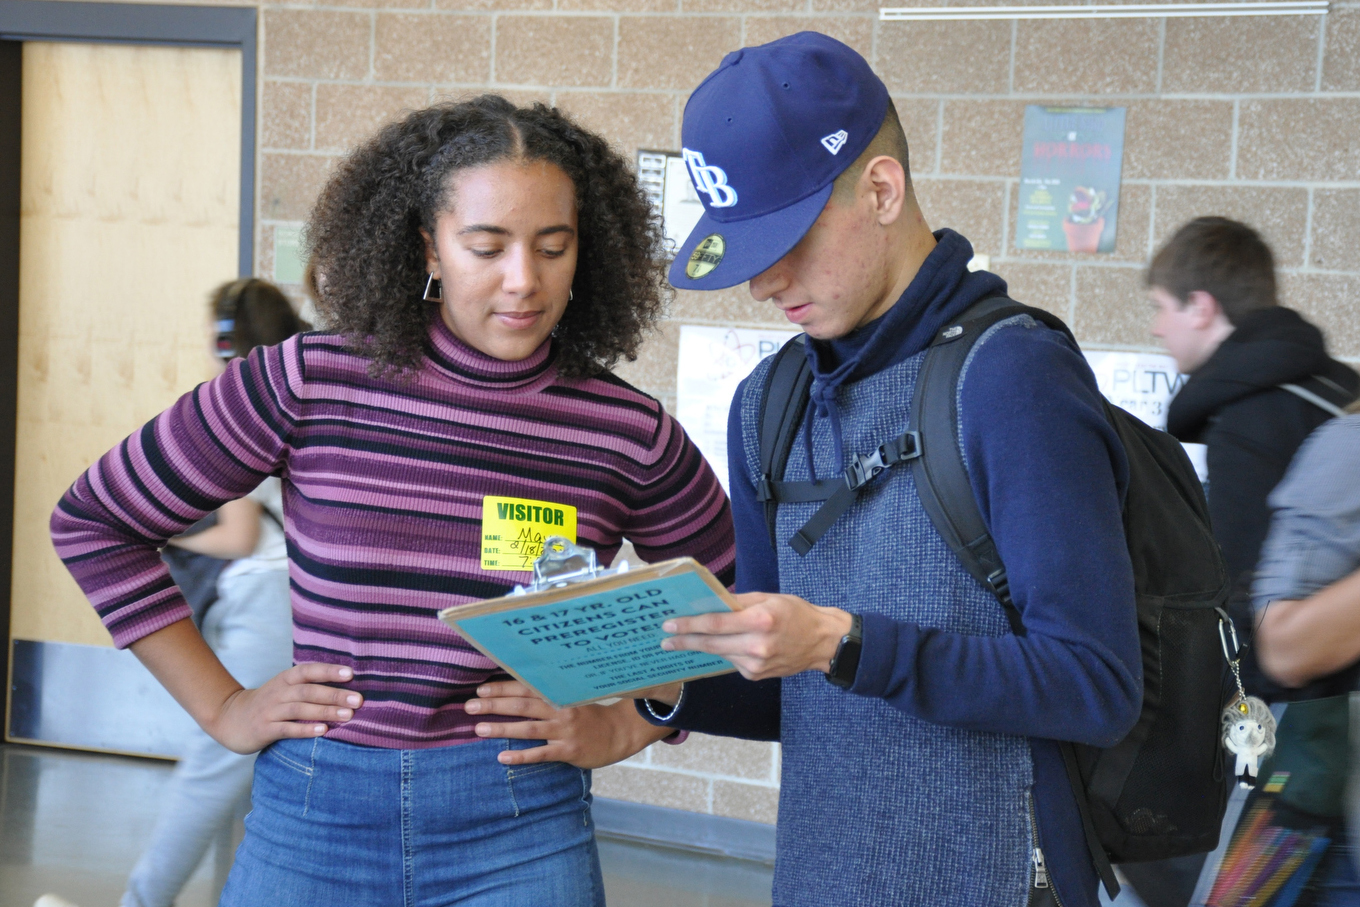 Organizers from the Colorado Democracy Challenge visited Bear Creek High School in Lakewood to sign up young people to vote.